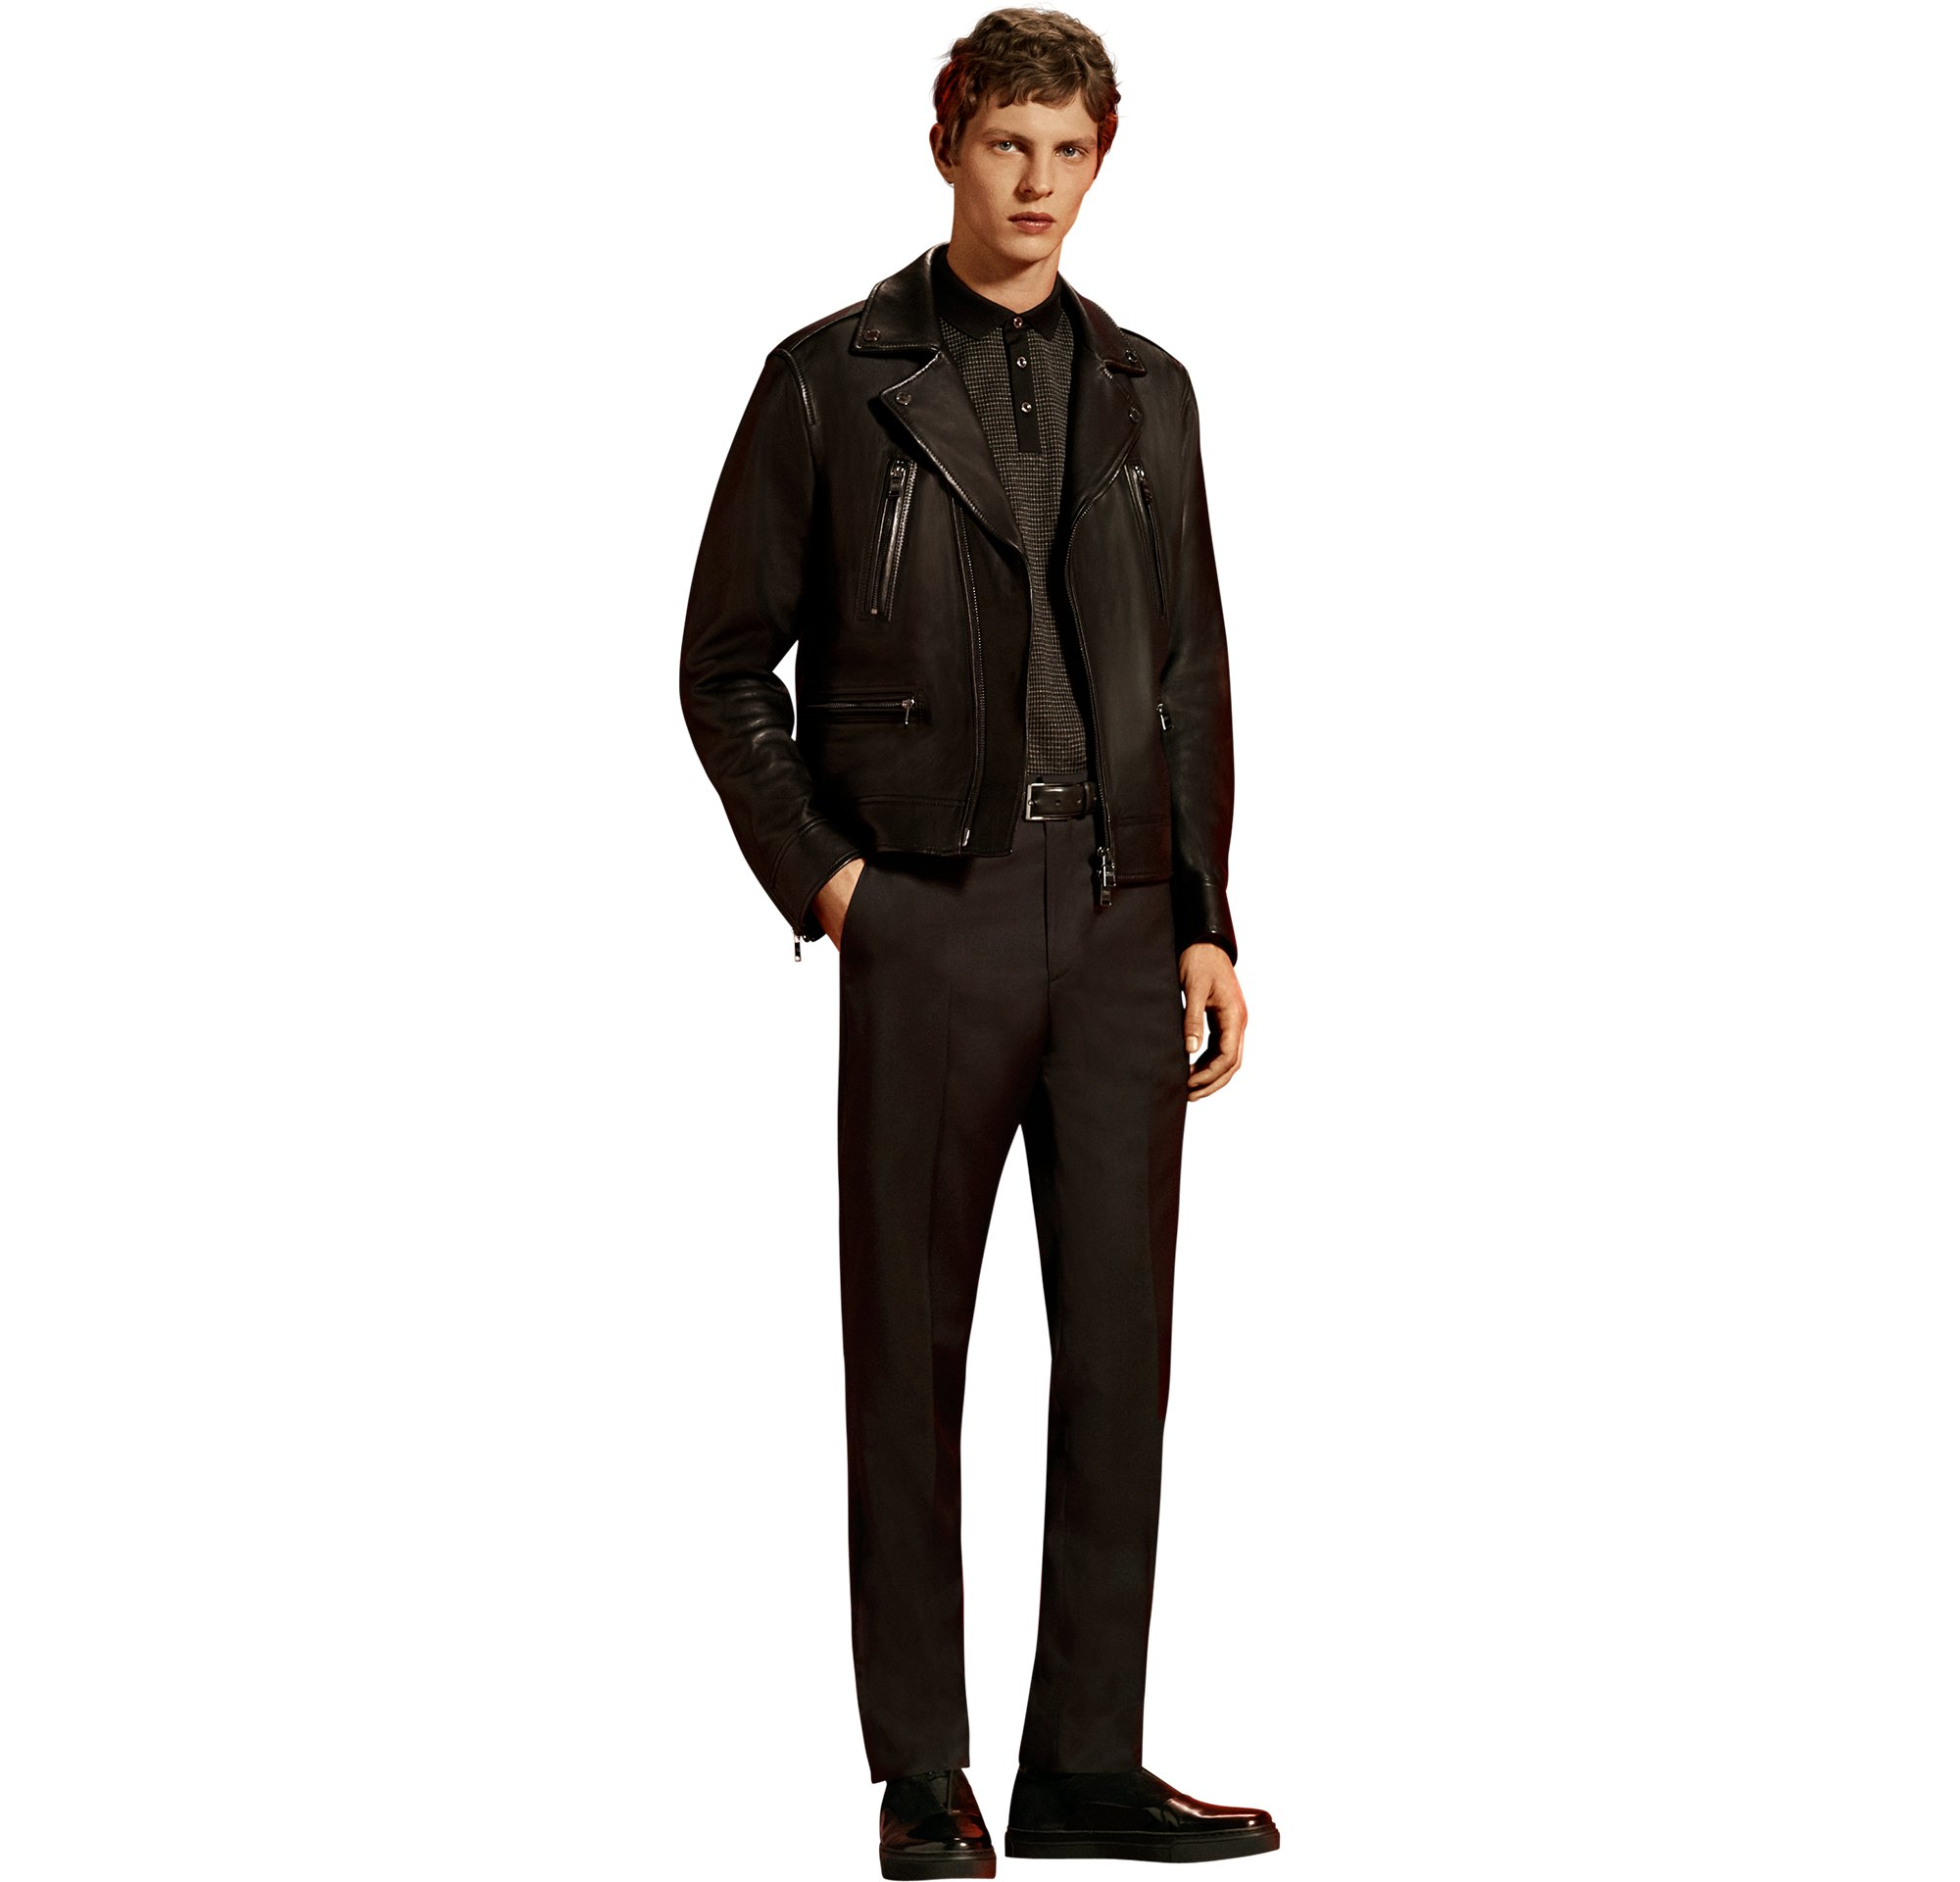 CTG_BOSS_Men_PS18_Look_11,